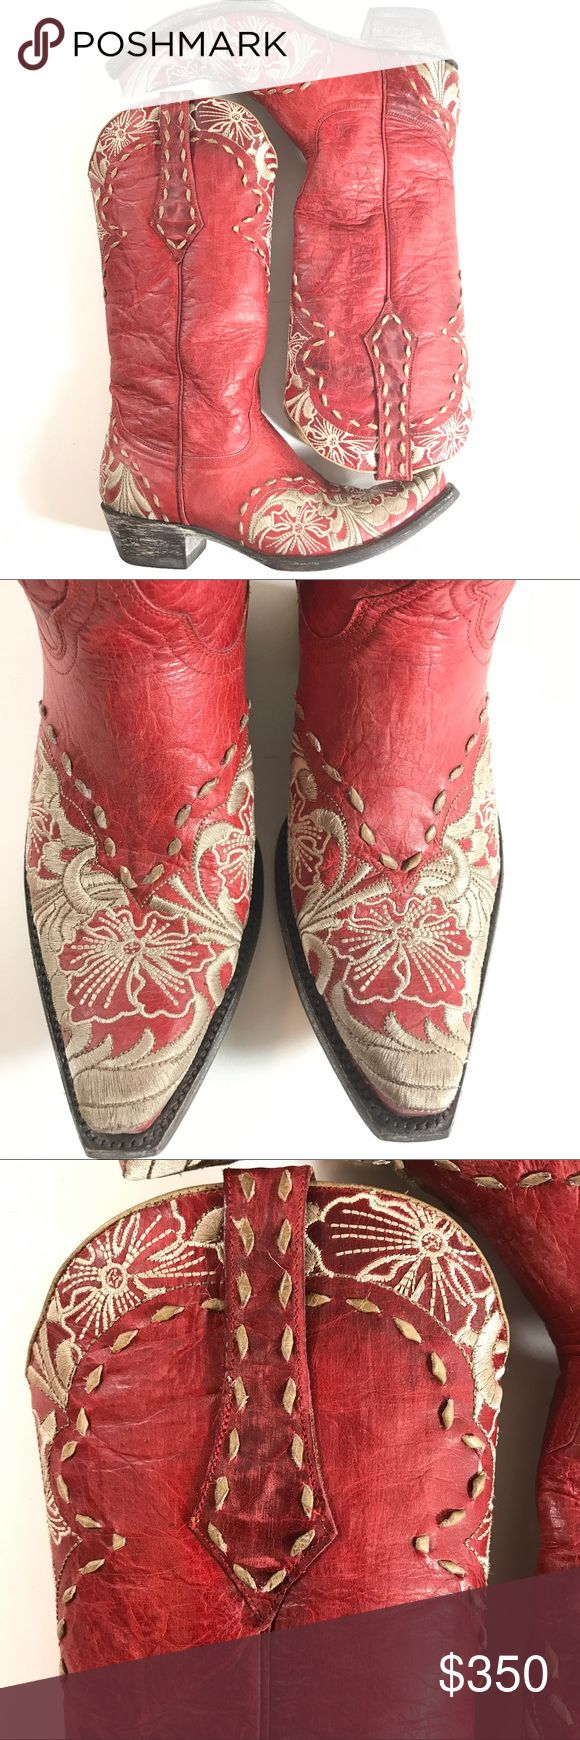 Old Gringo Women's Erin Cowboy Boots Size 7.5B Old Gringo Women's Erin Cowboy Boots Red-bone Size 7.5B With Box Very good condition stitching looks great overall there is one spot where stitching is frayed slightly at tip of one boot see photos for close ups Old Gringo Shoes